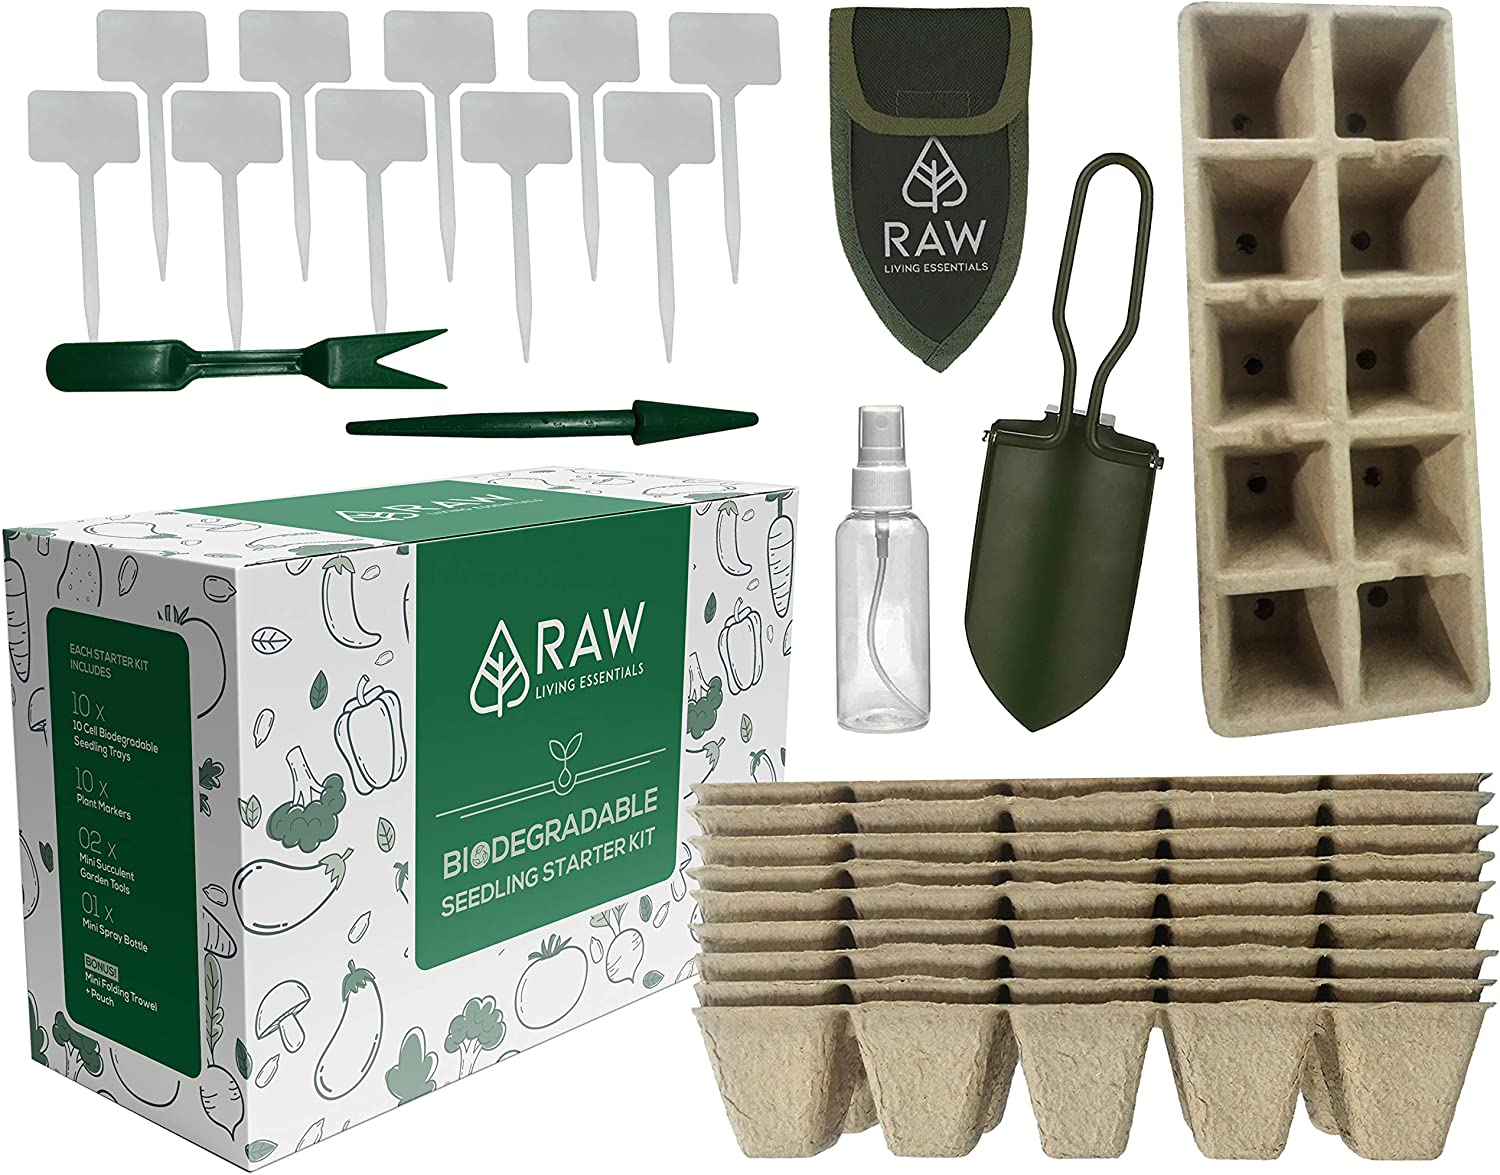 Biodegradable Seedling Tray Starter Kit - 100 Cell Natural Trays with Folding Shovel, Mini Succulent Garden Tool Set and Plant Markers for Gardening and Germination Indoors